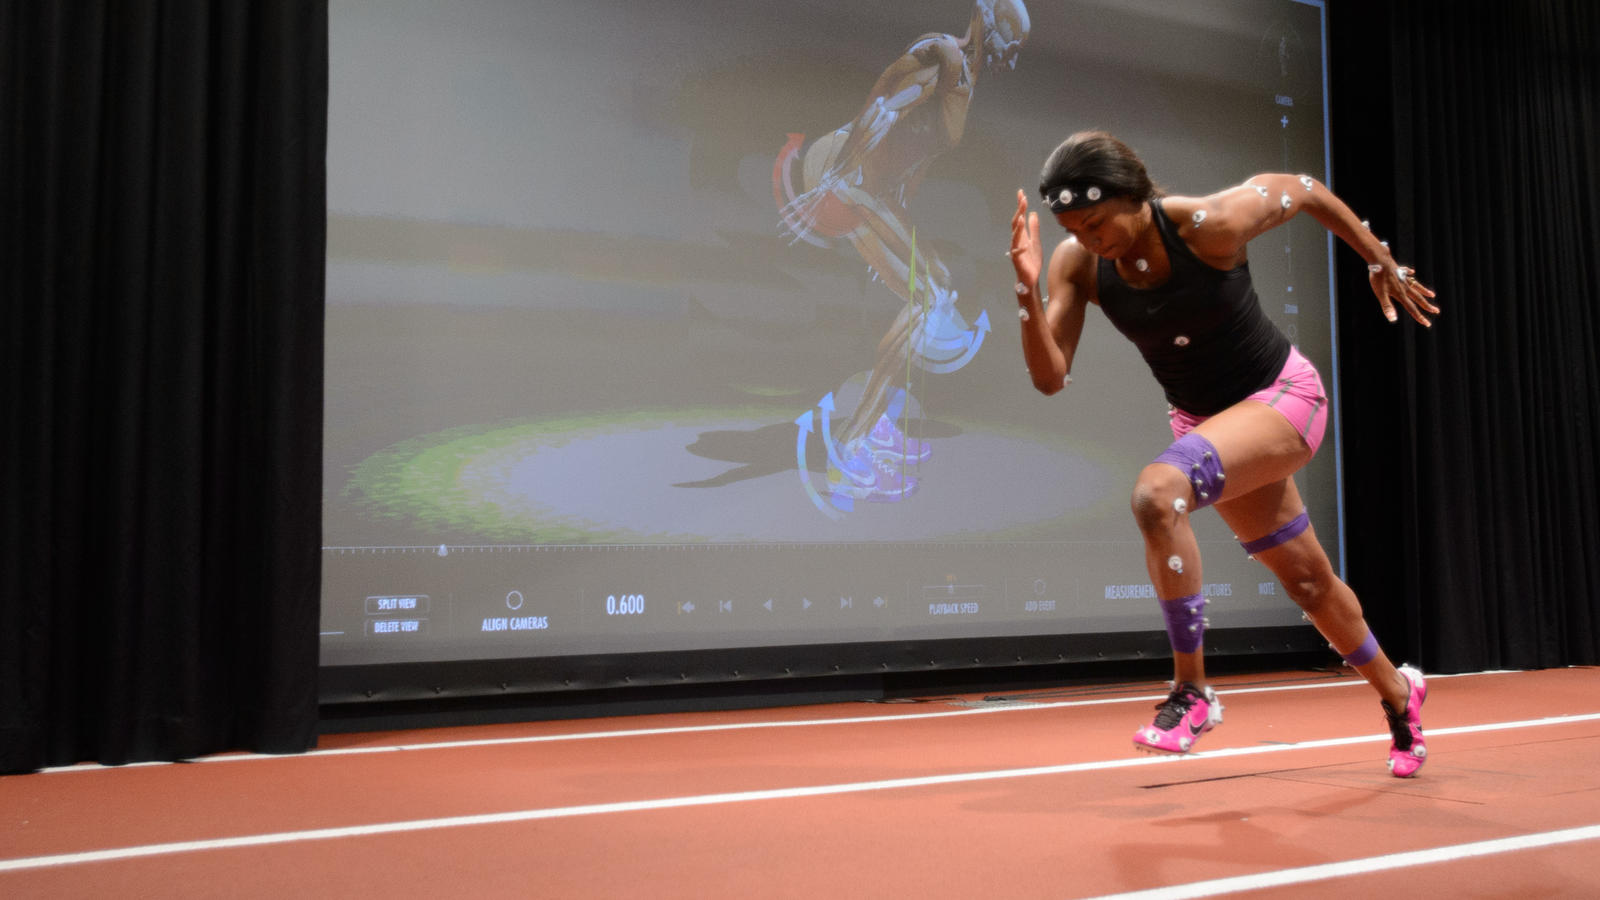 Nike News - Nike Sport Research Lab Incubates Innovation